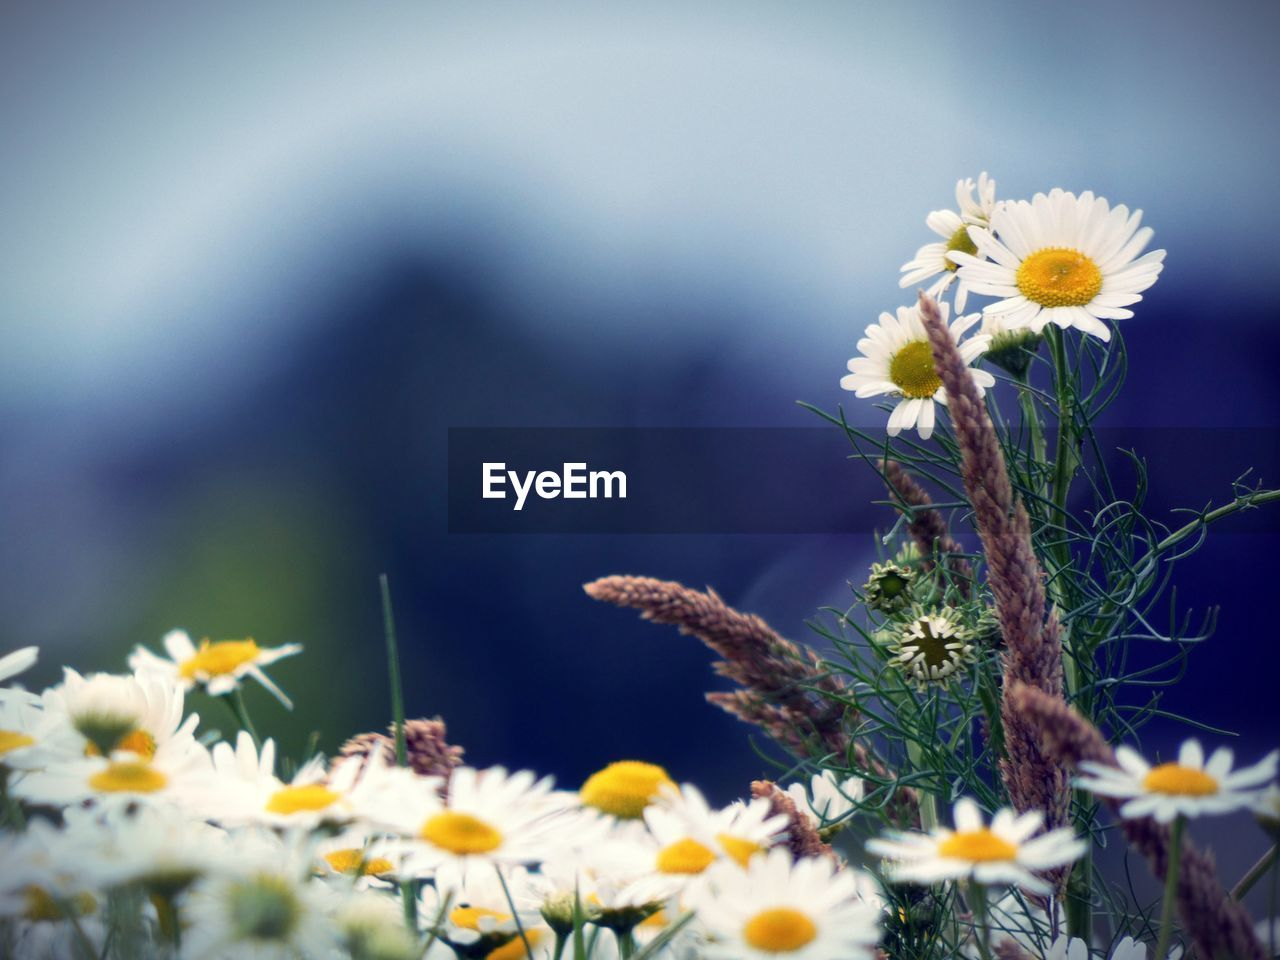 flowering plant, flower, plant, freshness, vulnerability, fragility, beauty in nature, growth, petal, flower head, nature, close-up, selective focus, yellow, inflorescence, daisy, no people, day, pollen, field, outdoors, springtime